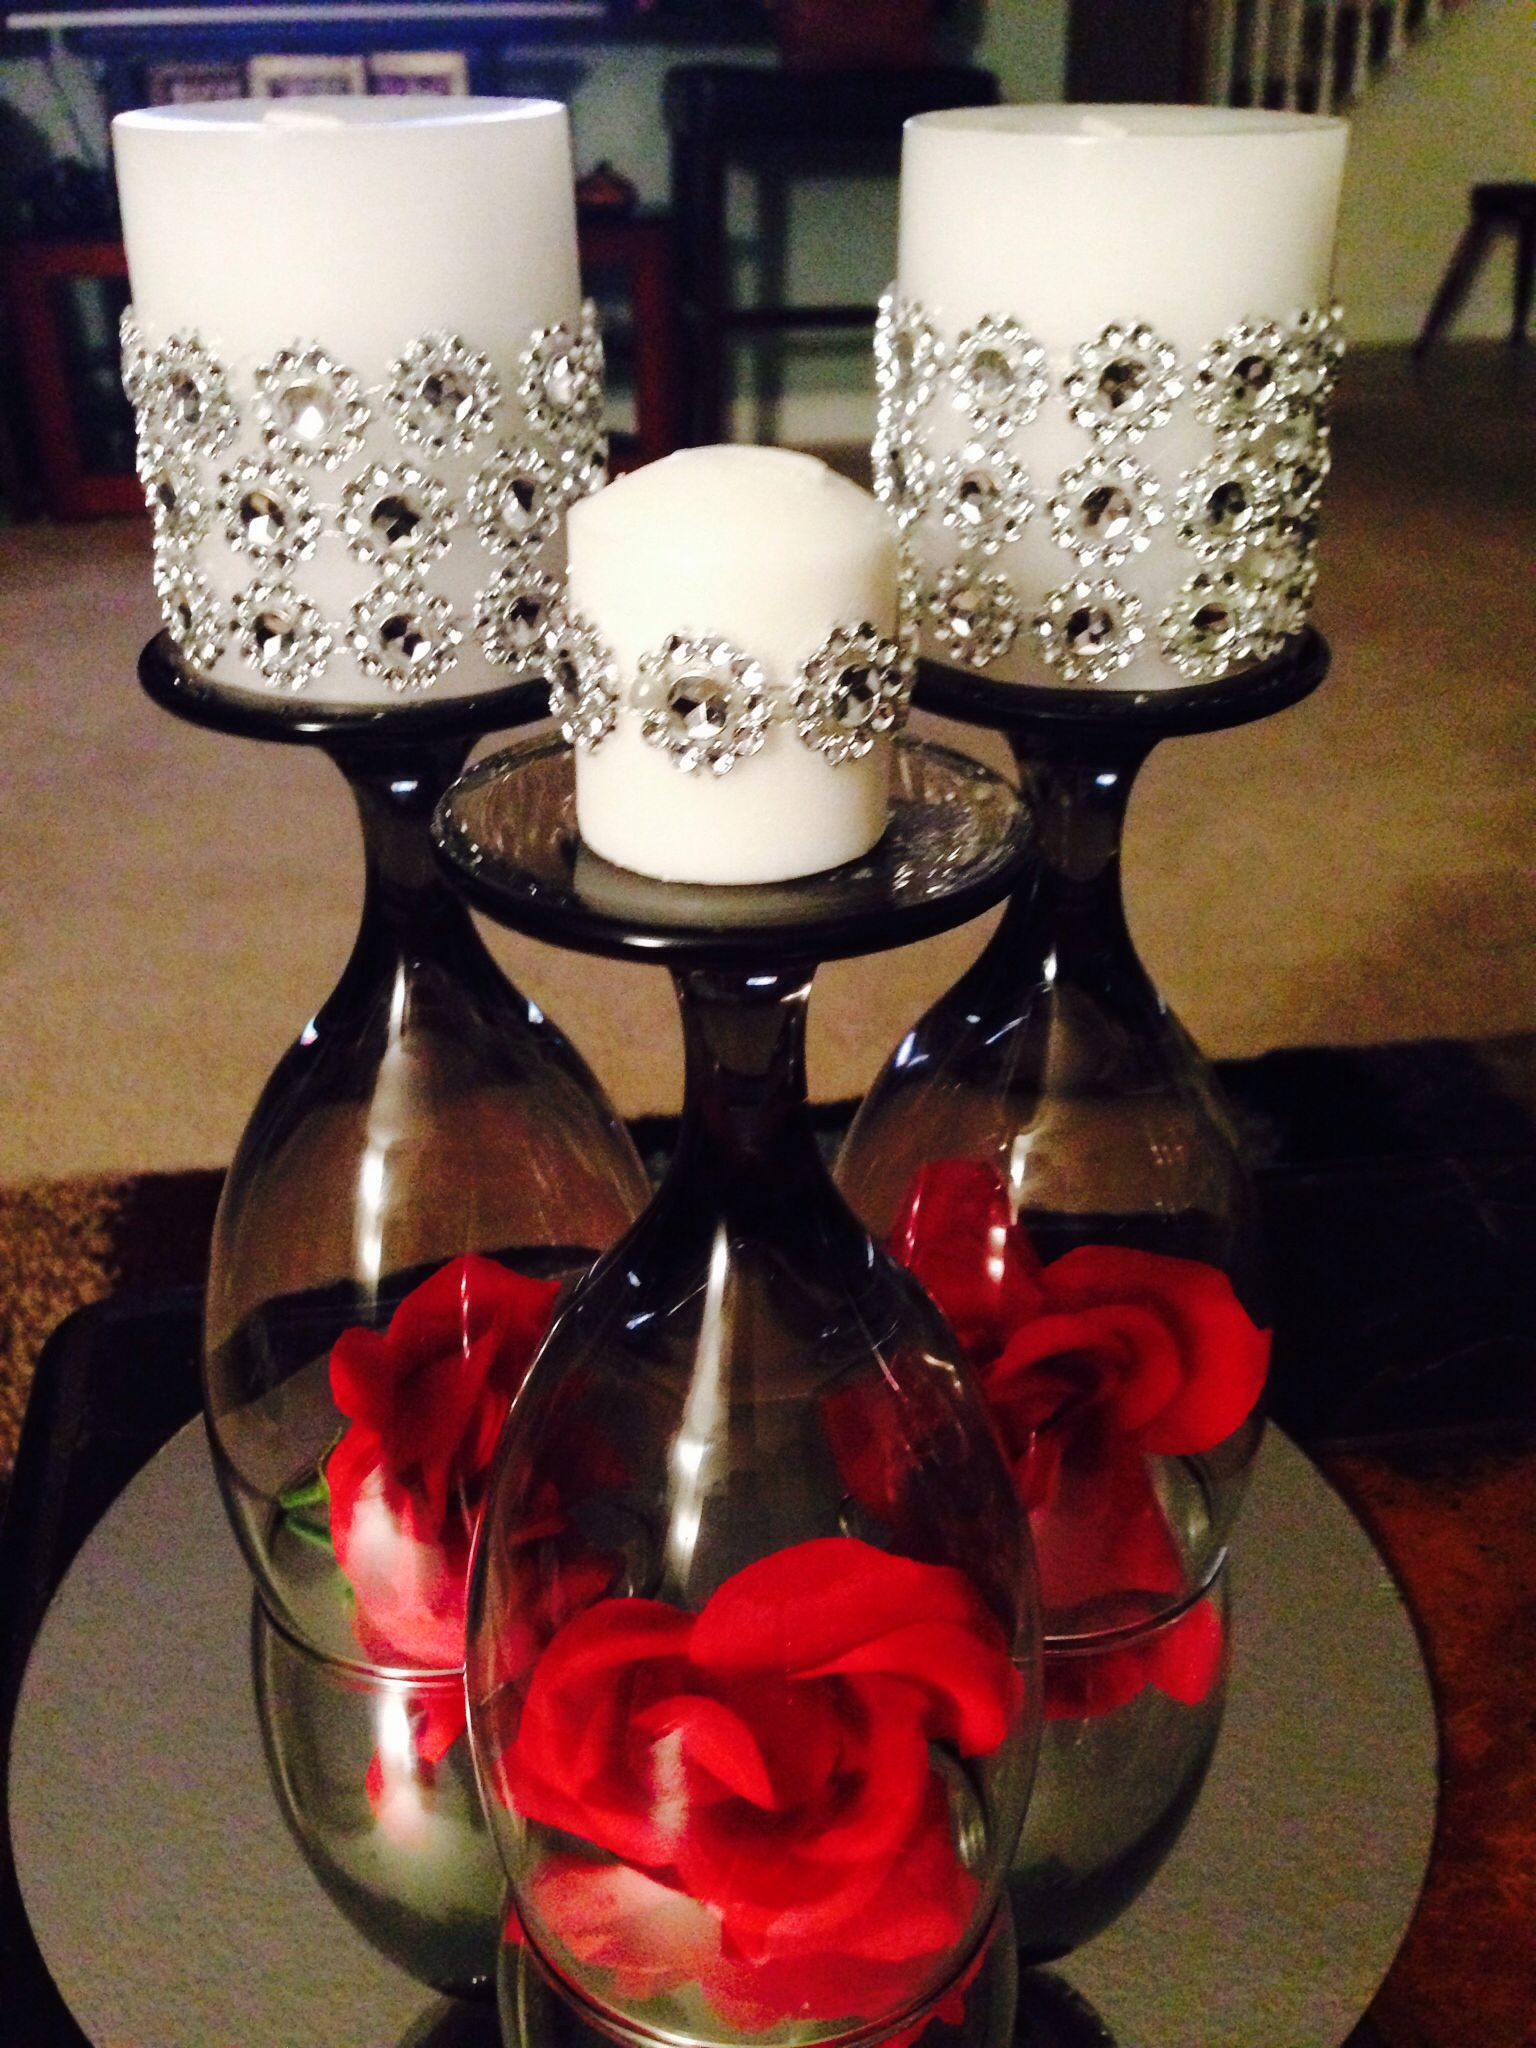 Rhinestone Candle Centerpieces Mckenzie Designs Wine Glass Centerpieces Glass Centerpieces Elegant Candle Holders